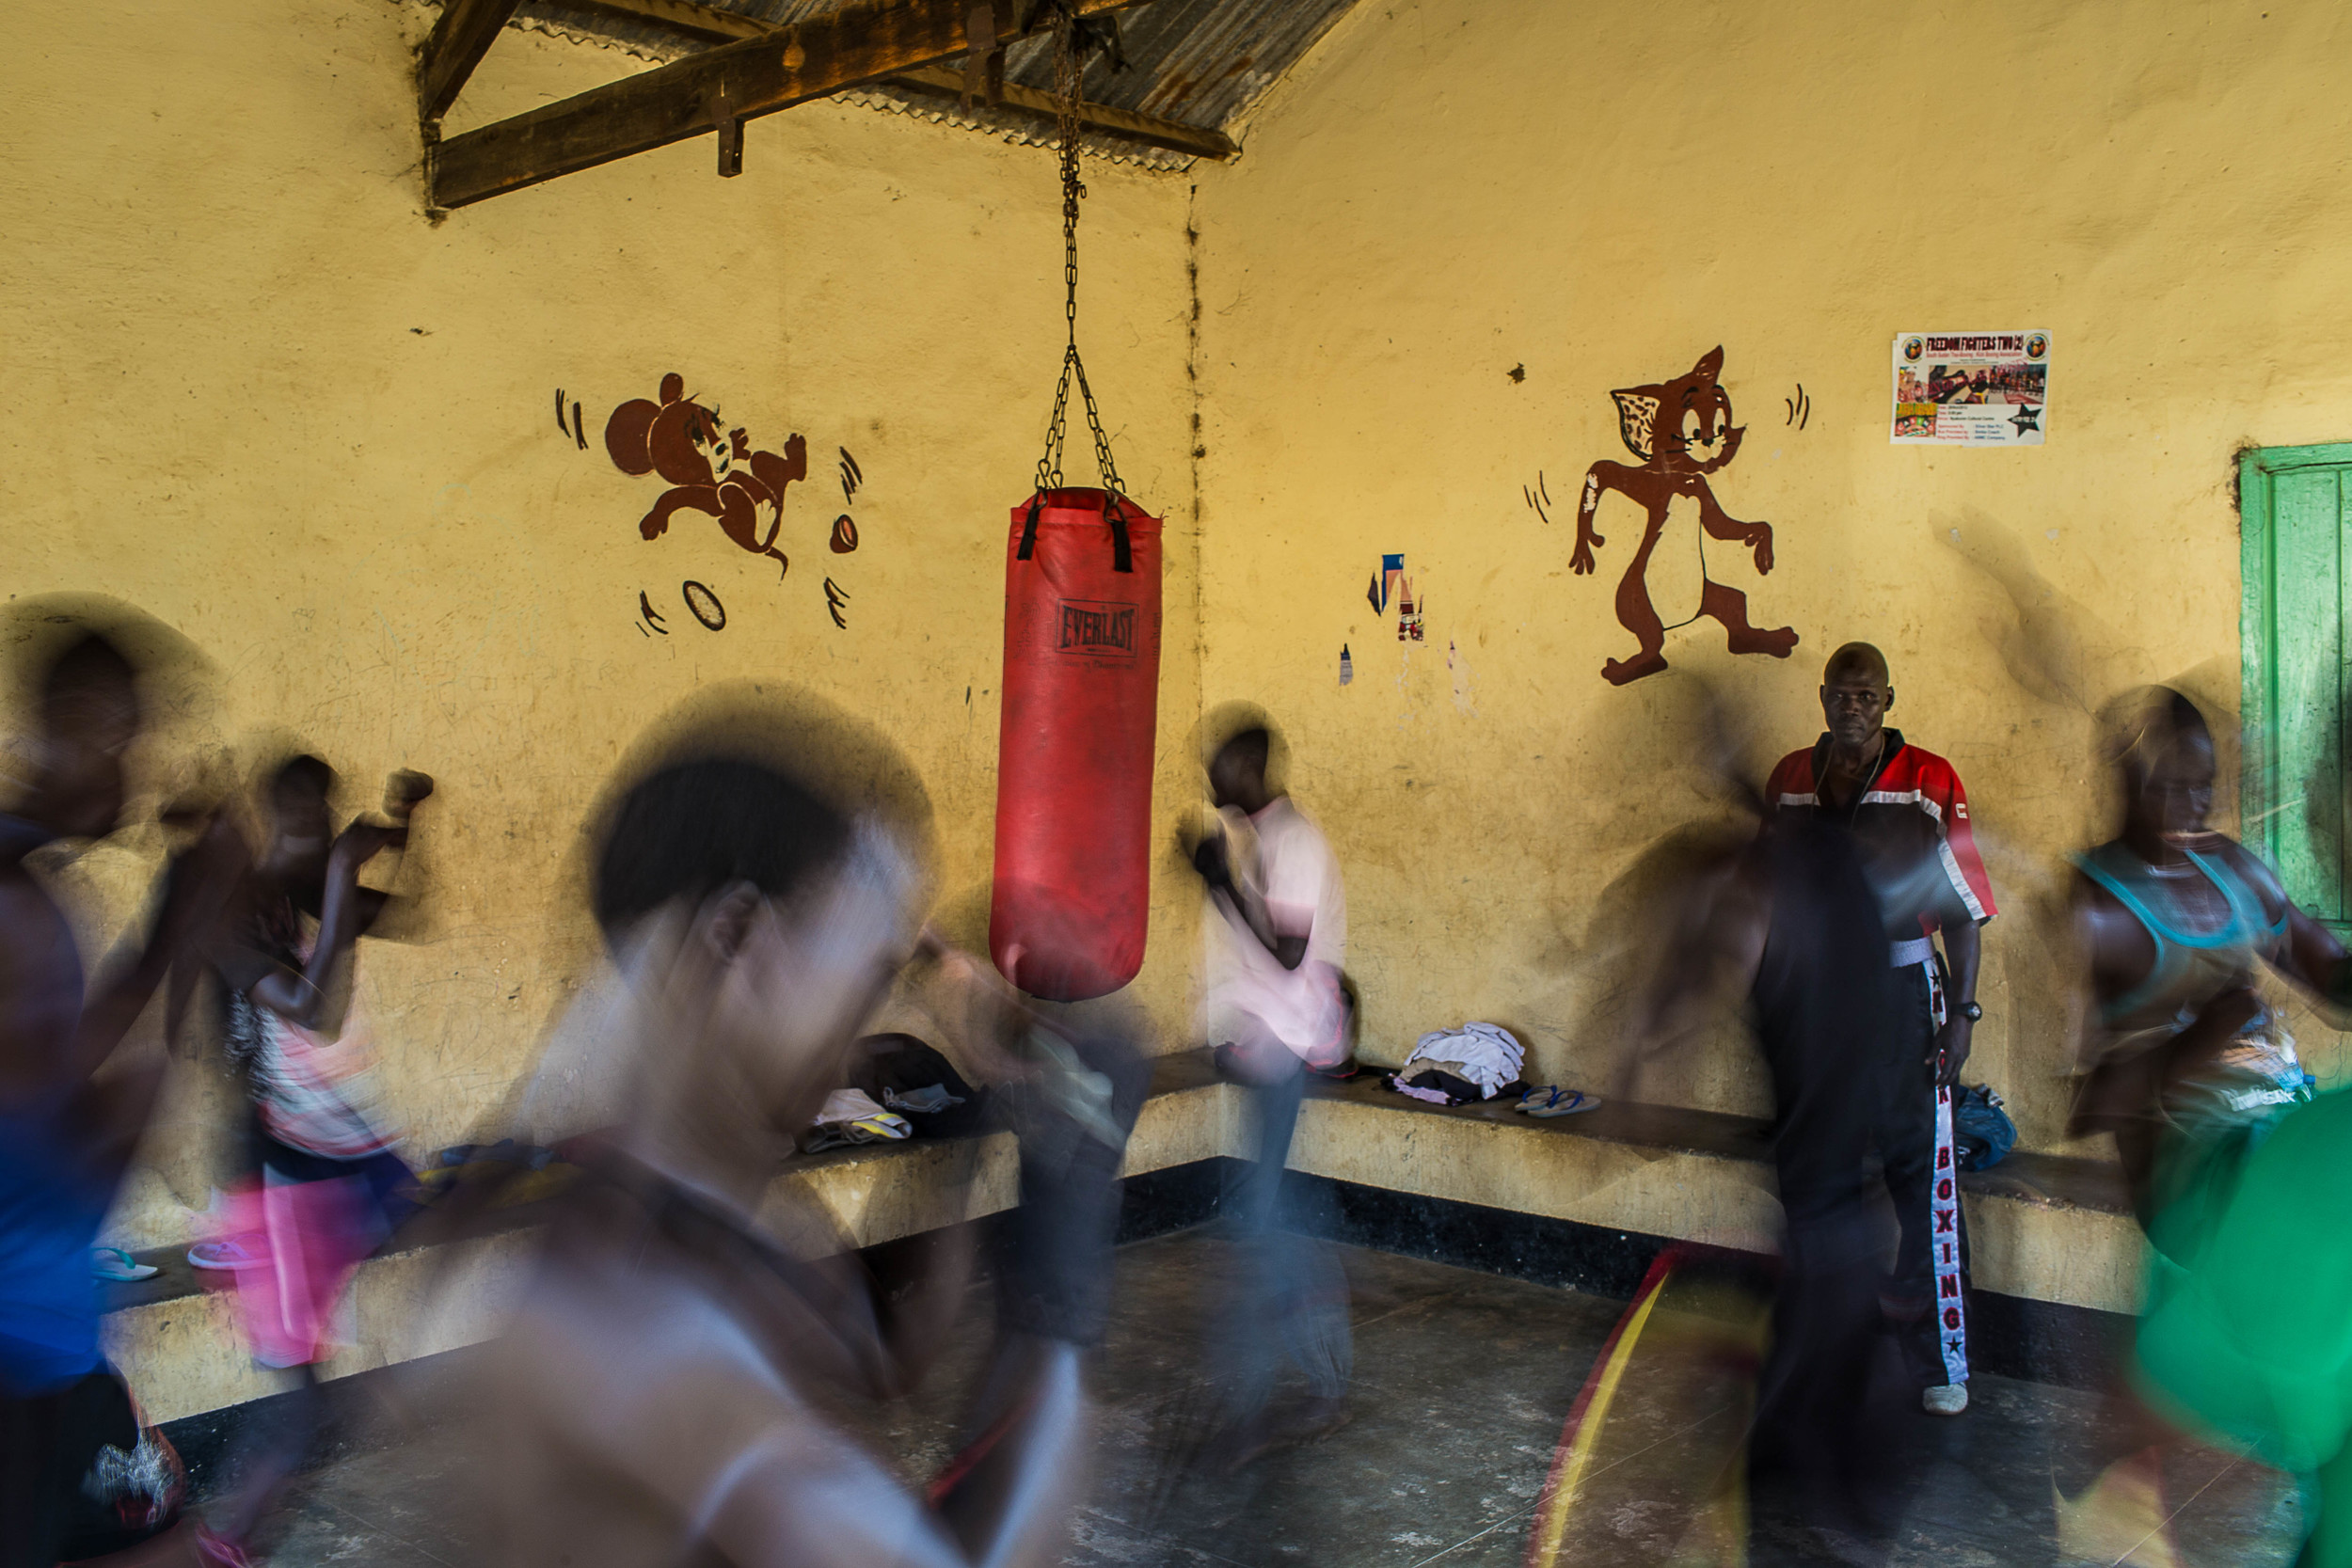 Puro looks on as members of his kickboxing team train at their center in Juba.